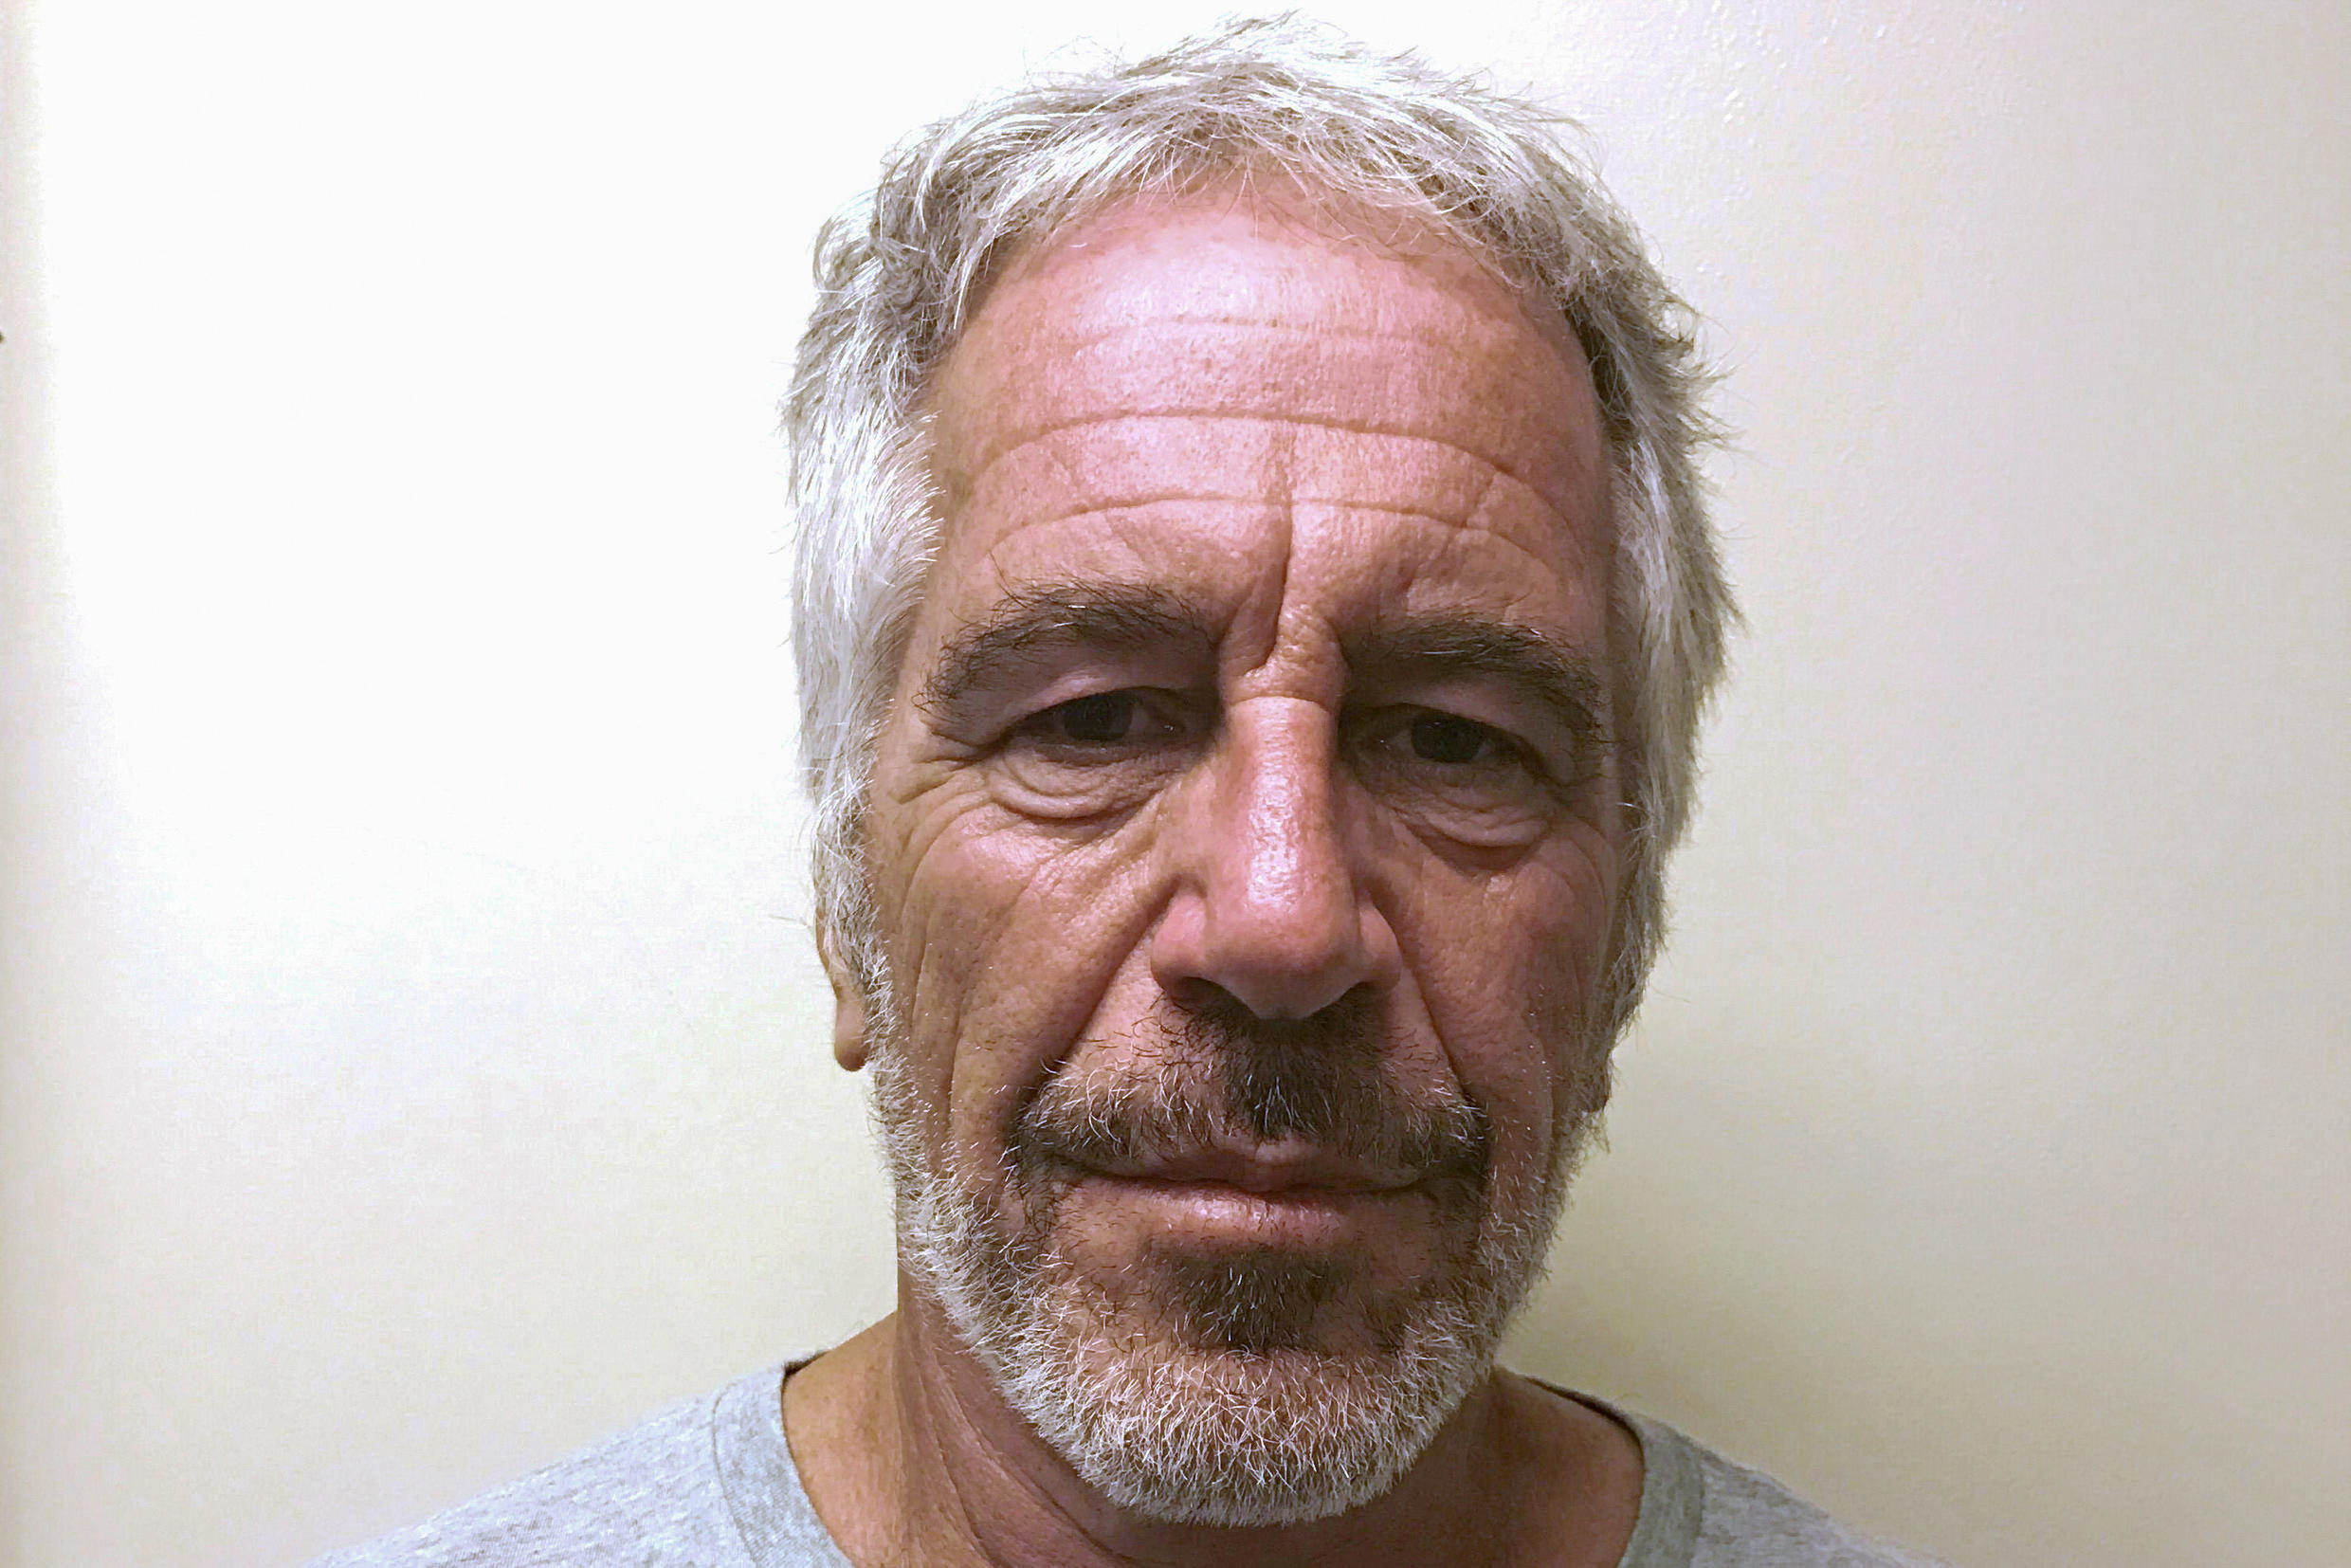 Jeffrey Epstein appears in a photograph taken for the New York State Division of Criminal Justice Services' sex offender registry March 28, 2017 and obtained by Reuters July 10, 2019. New York State Division of Criminal Justice Services/Handout/File Phot